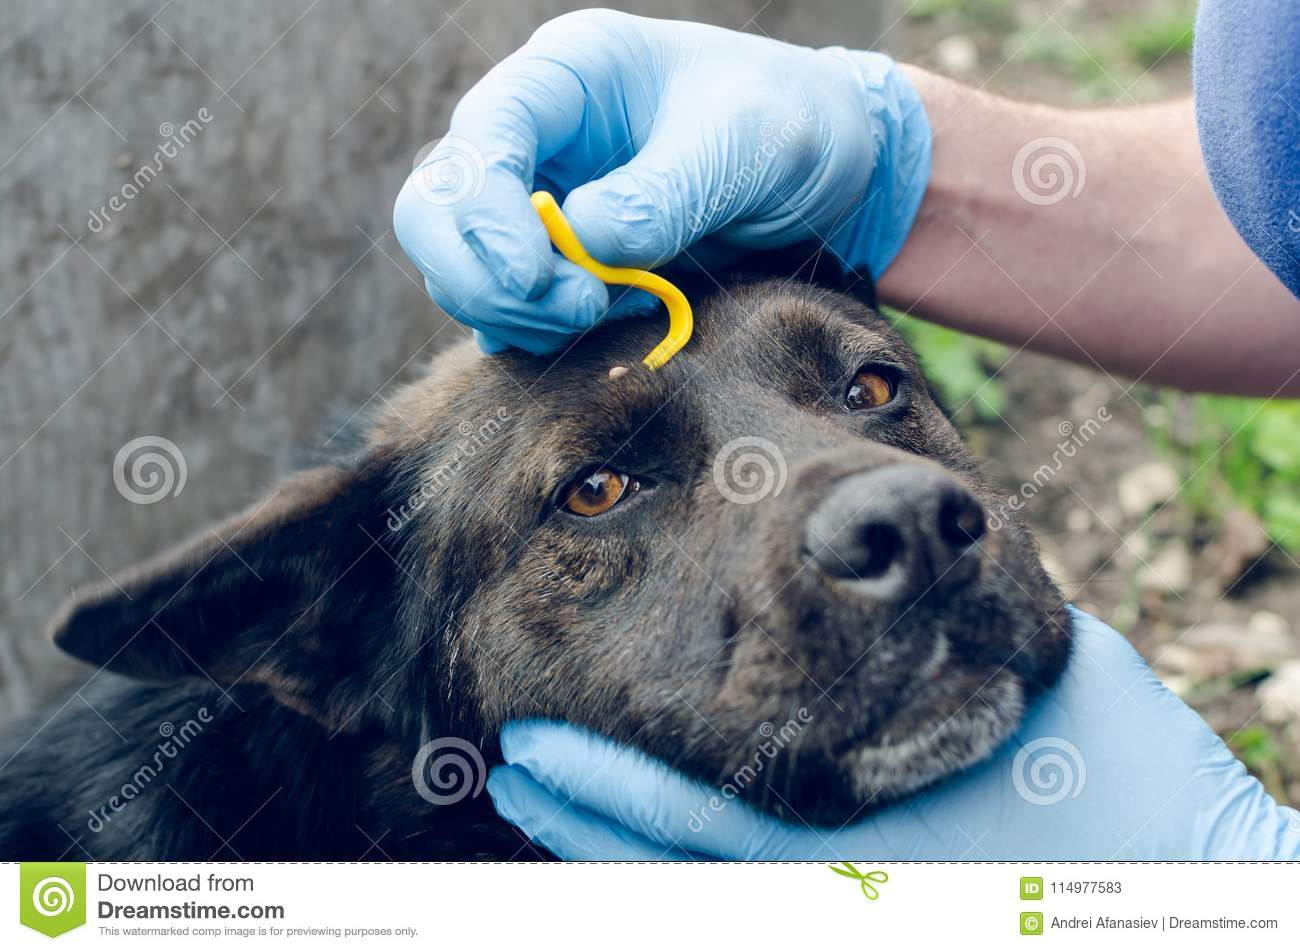 Human hands in blue gloves remove the tick with the hook of the dog